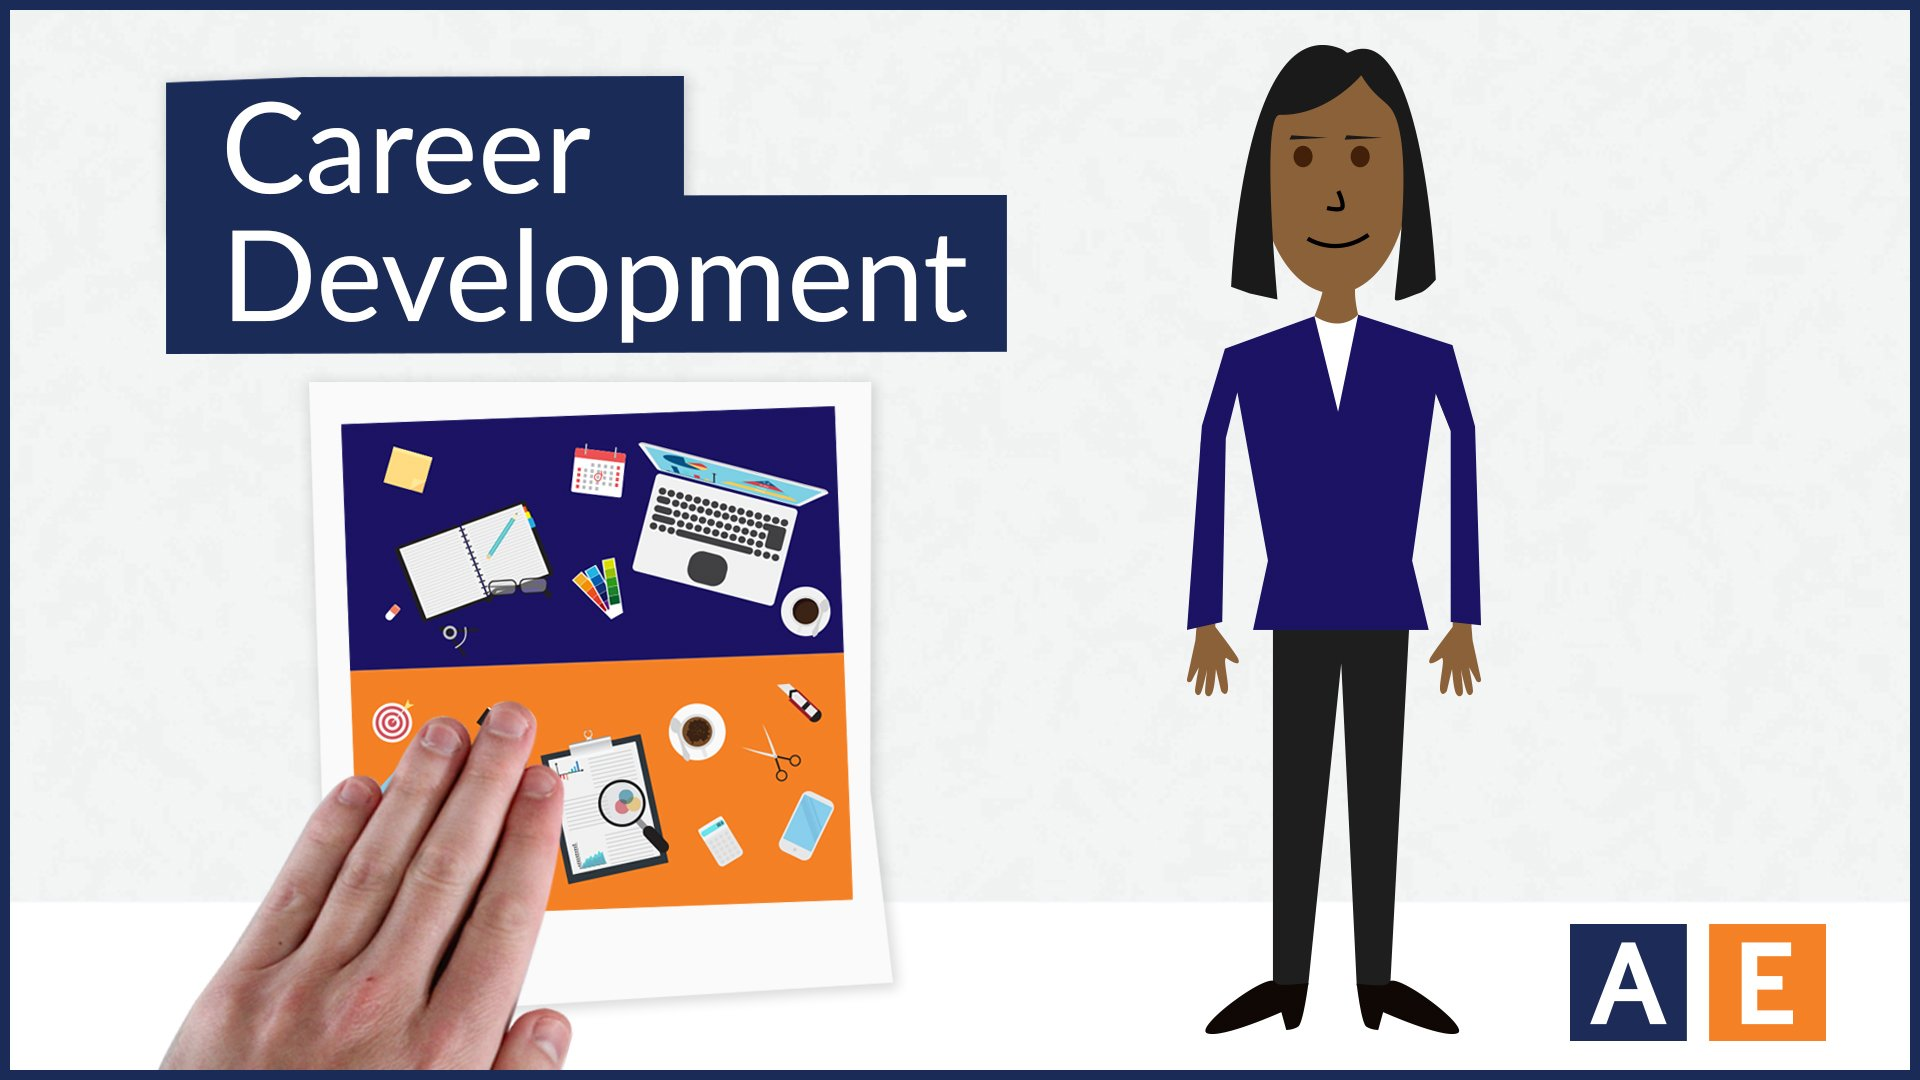 Cartoon graphic of woman next to the words Career Development and photo of a hand placing a desktop images under title